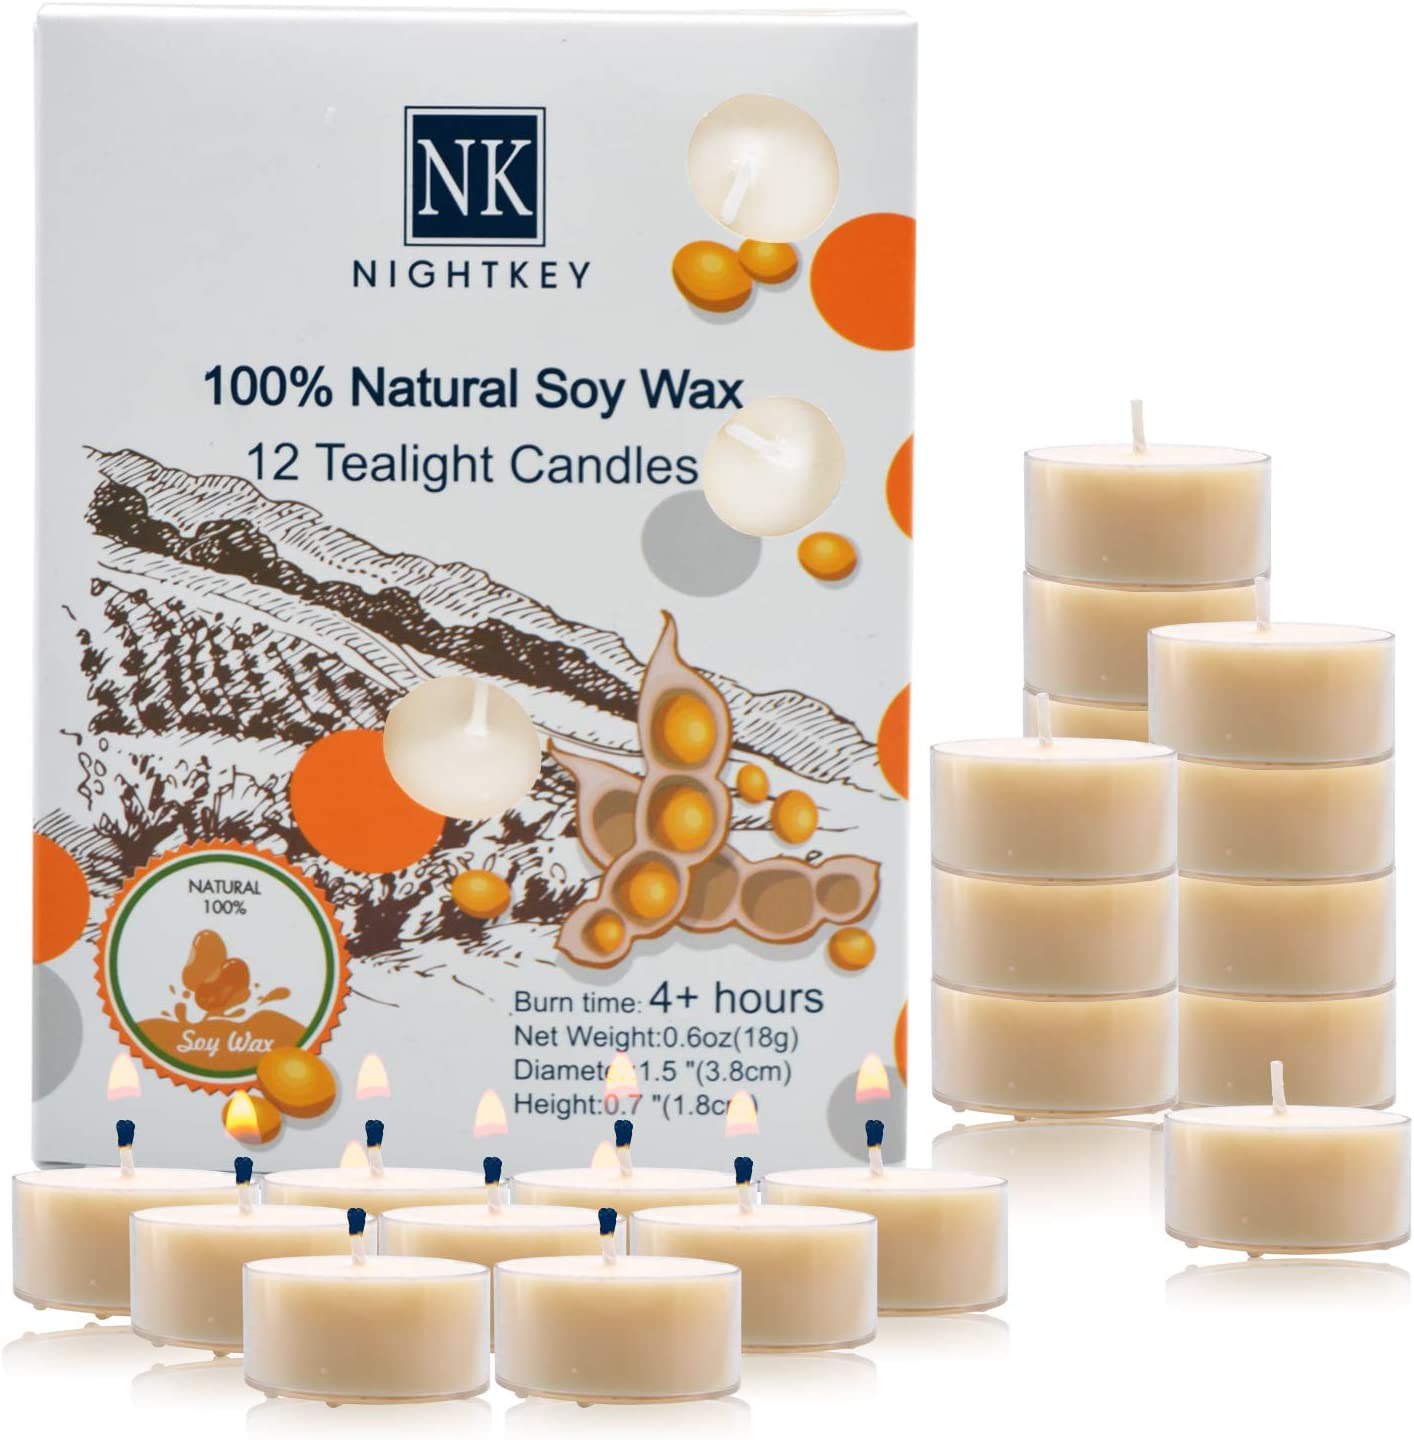 NIGHTKEY Pure Soy Wax Handmade Clear Cup Unscented Tealight Candles | Natural Smell and Color | Up to 4 Hours Burntime | Set of 12